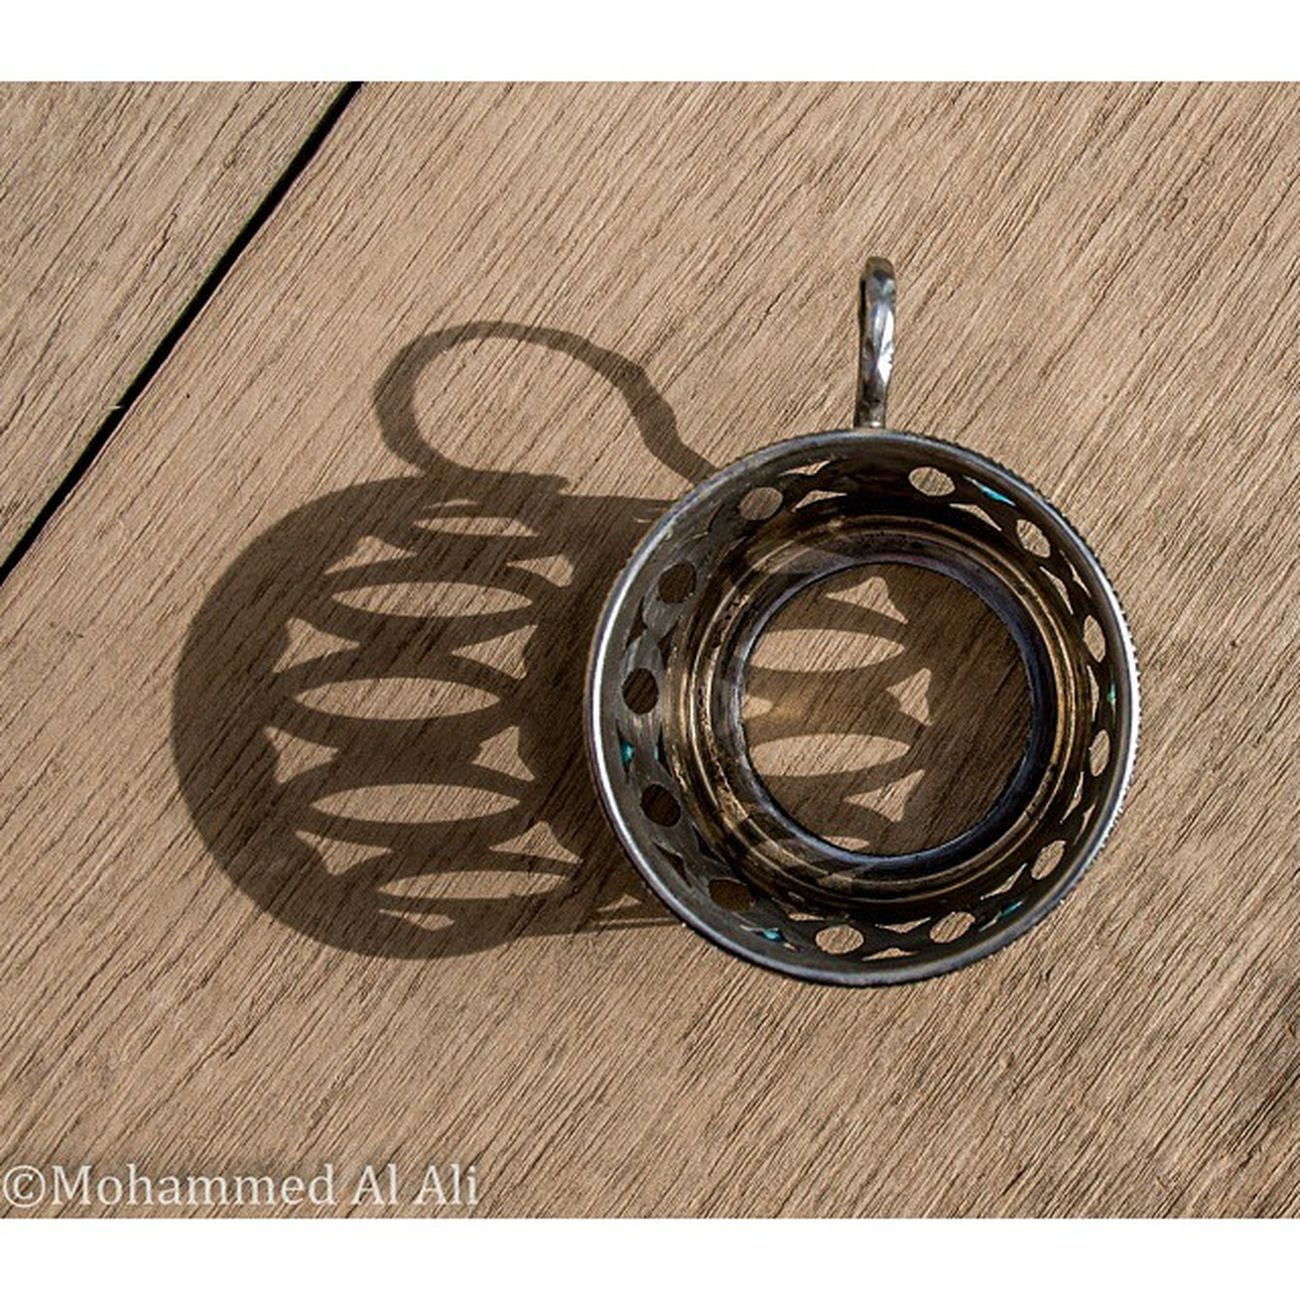 Olympus OlympusPEN PL7 20mm 1 .7 Lens Lumix Macro Micro_four_third Color Blur Cup Basrah Iraq Mft Wood Shadow Sun Arabesque Art